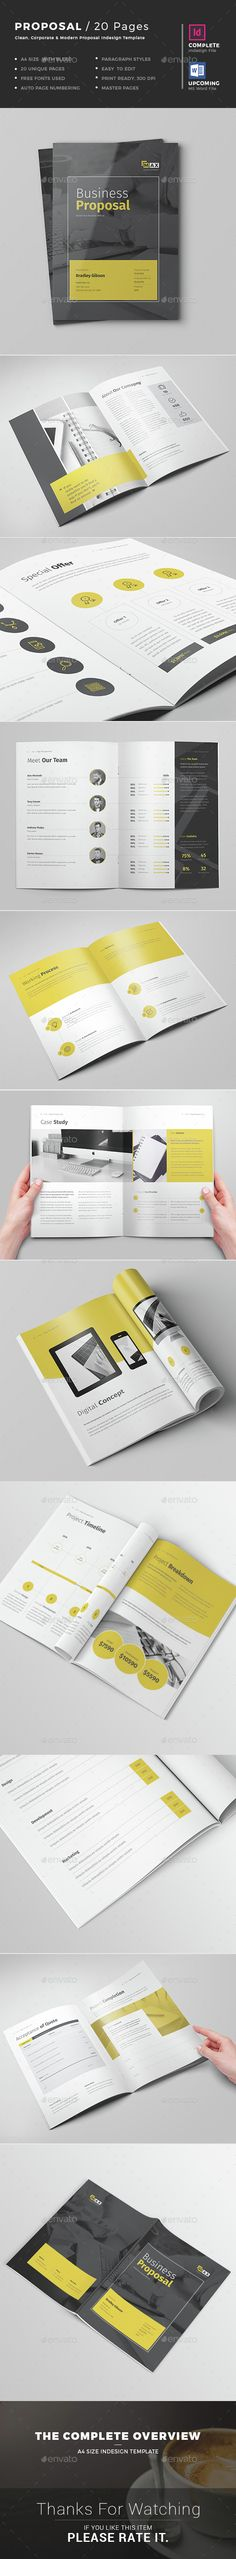 Proposal Template Project Proposal InDesign Template v2